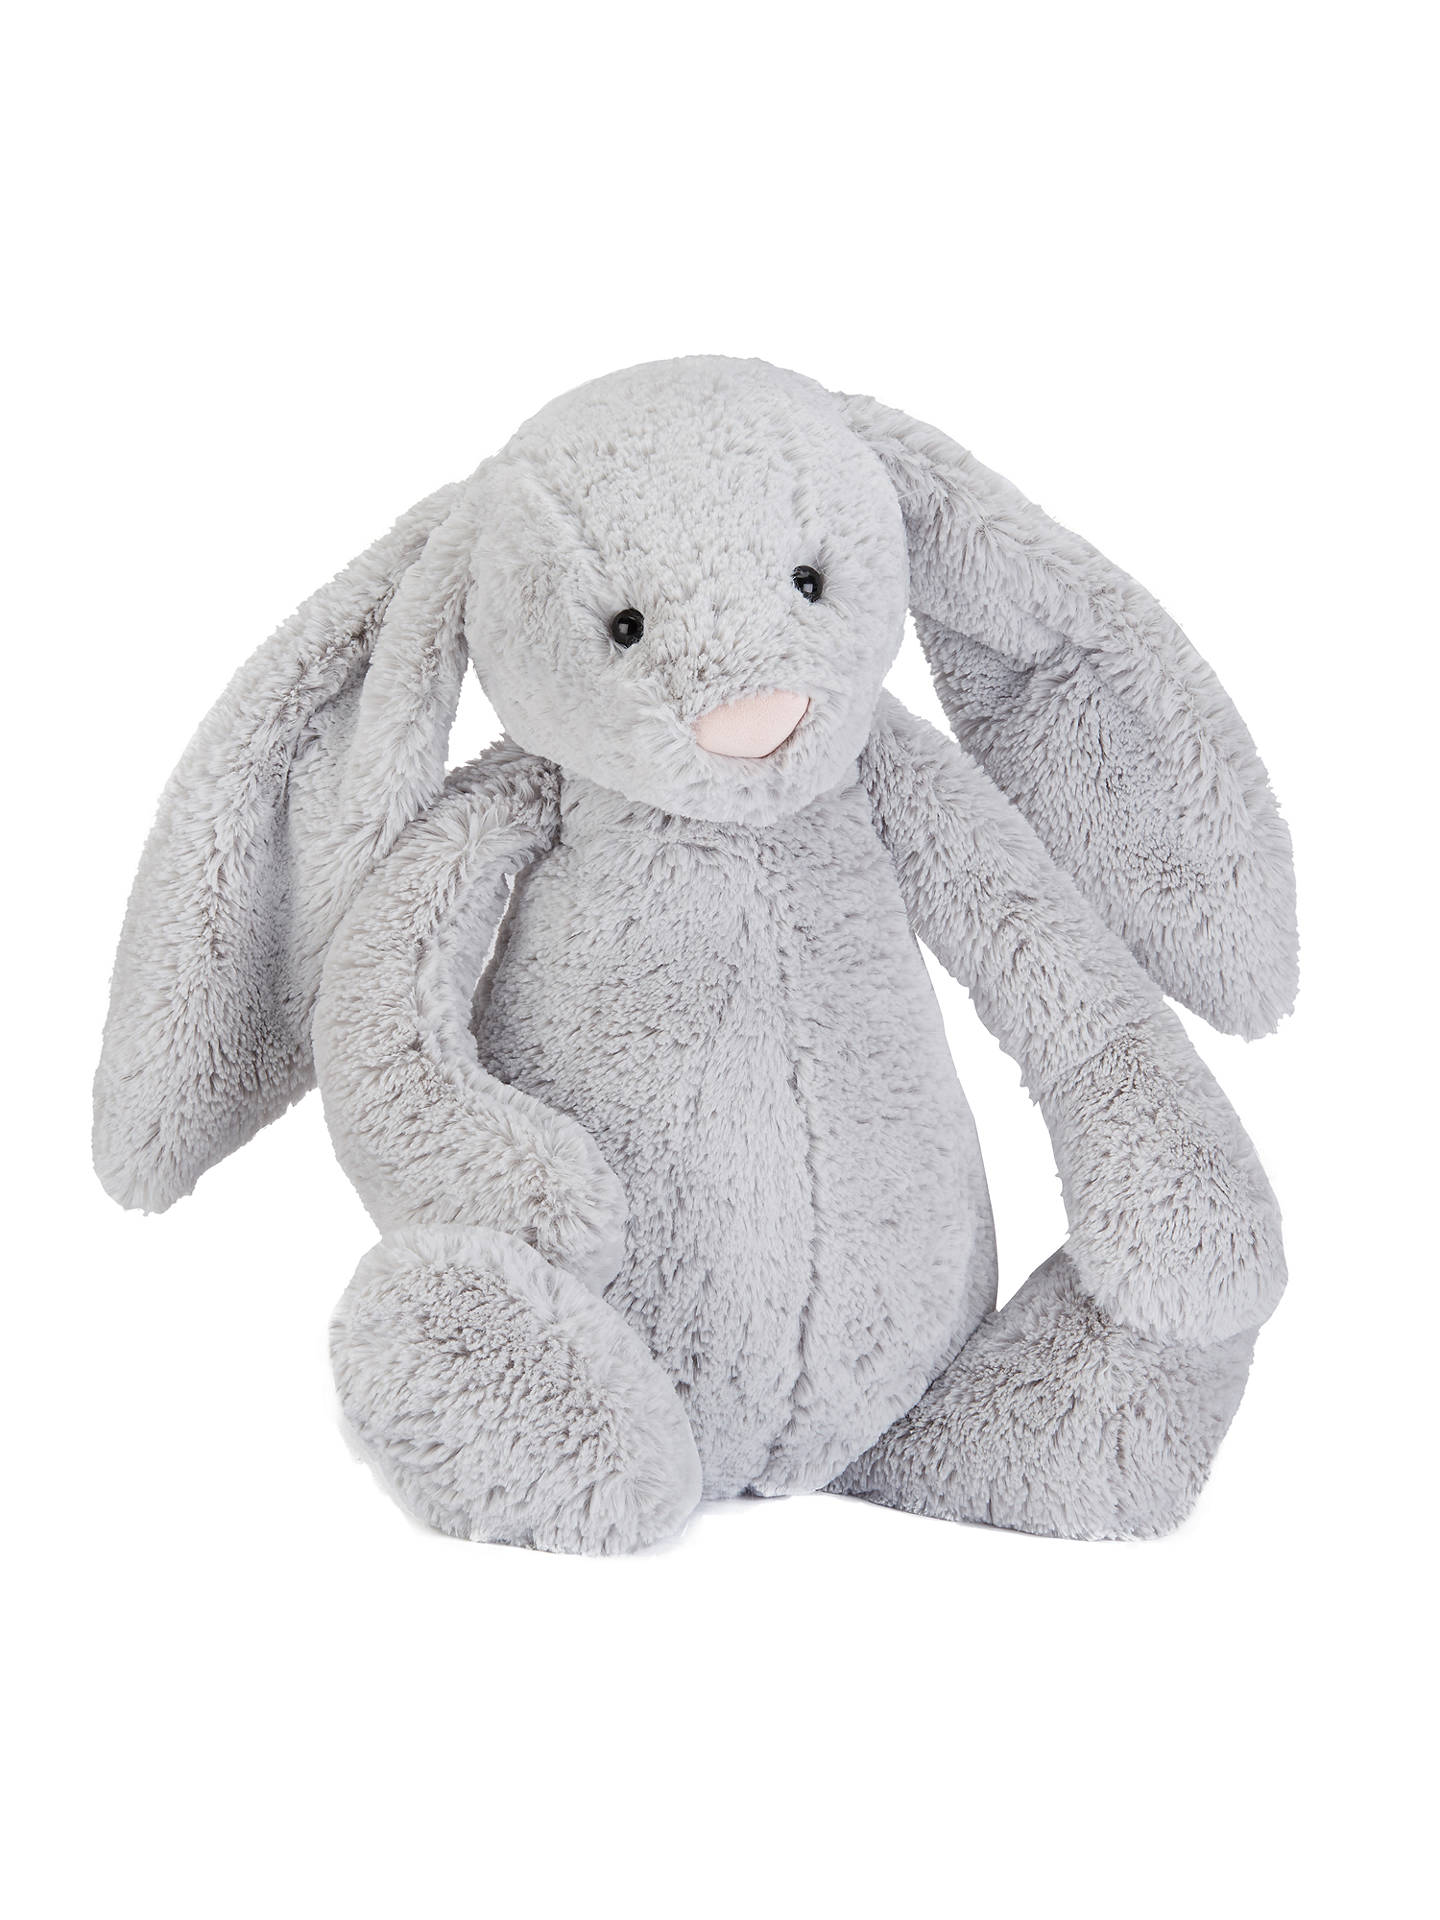 BuyJellycat Bashful Bunny Soft Toy, Huge, Silver Online at johnlewis.com